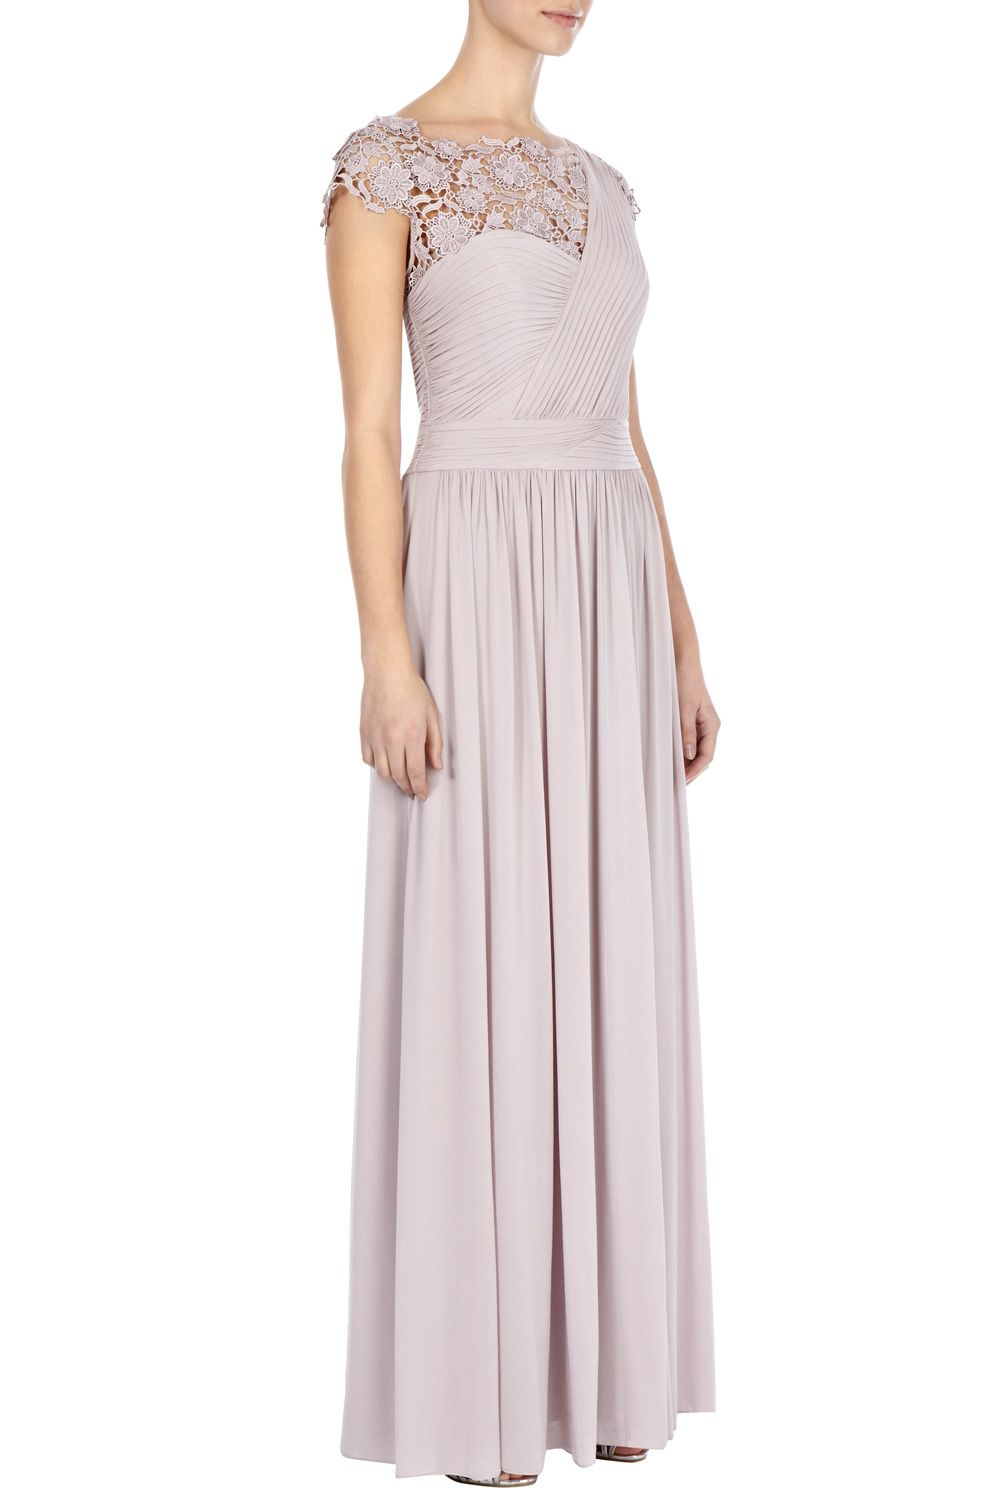 Millie lace maxi dress